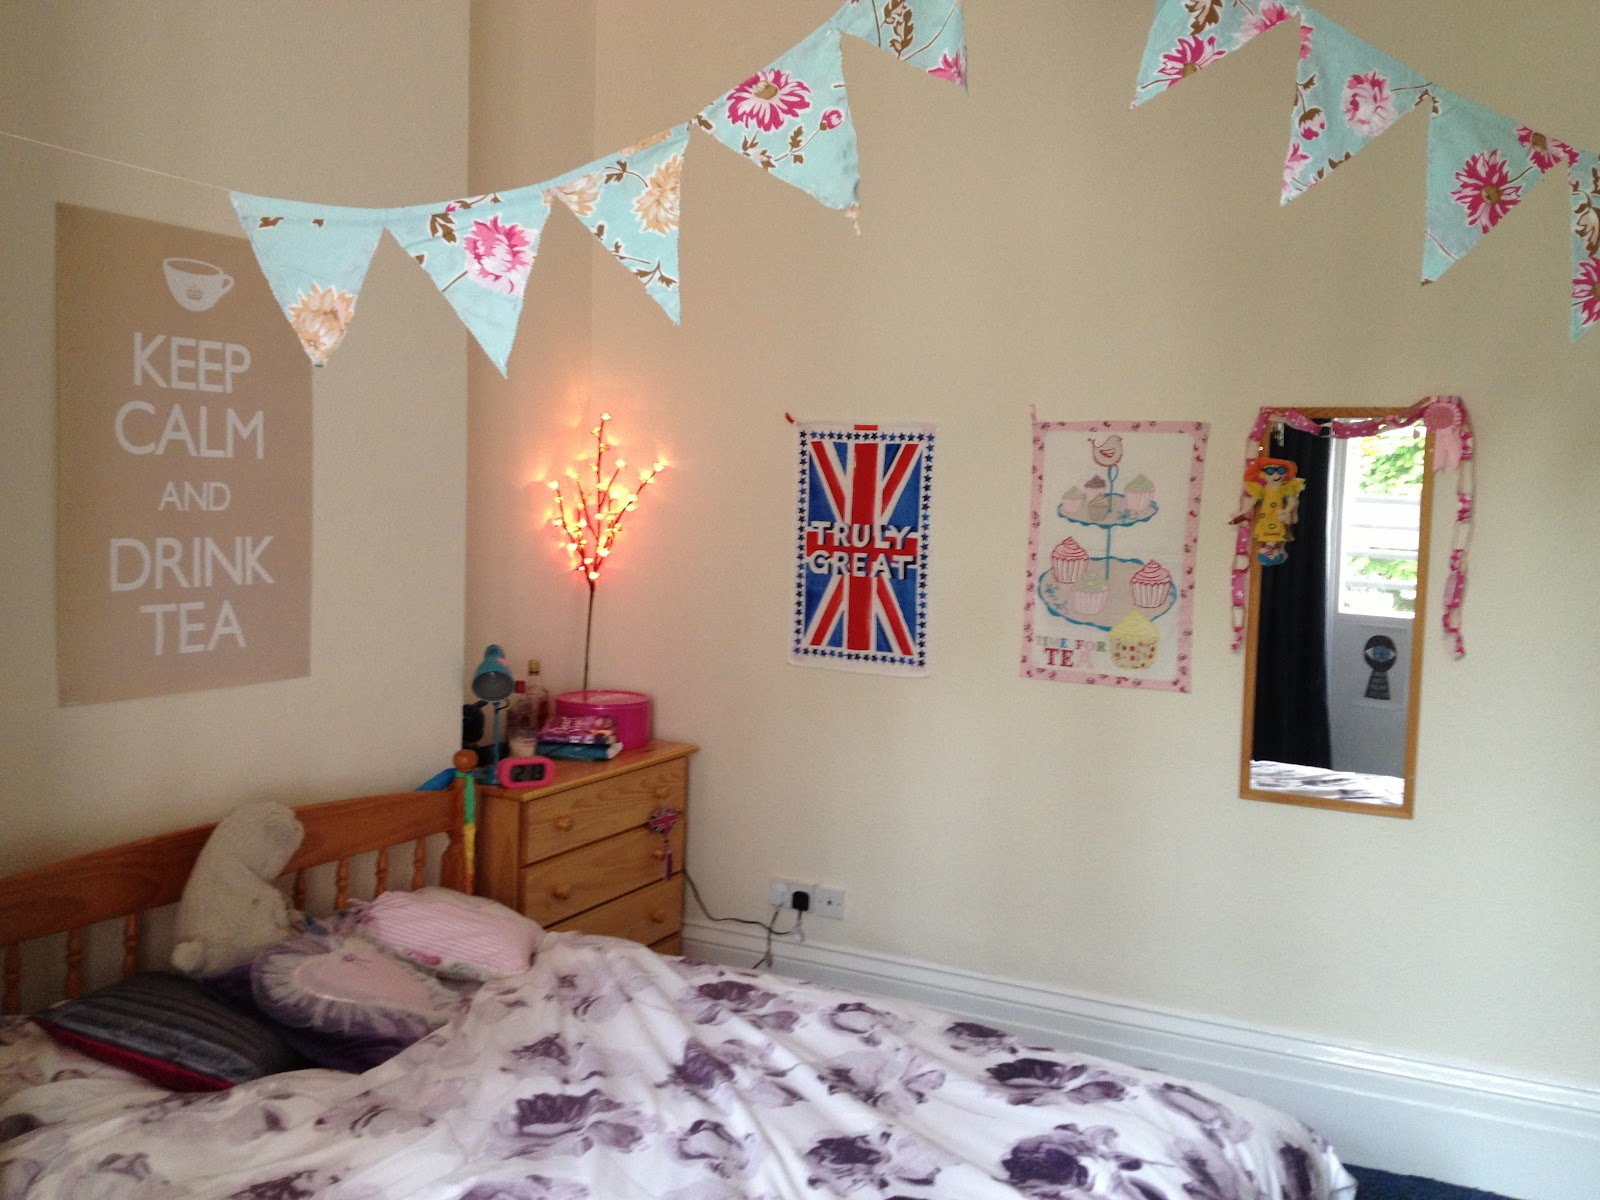 The twenty best ways to decorate your student room at uni for How to decorate room